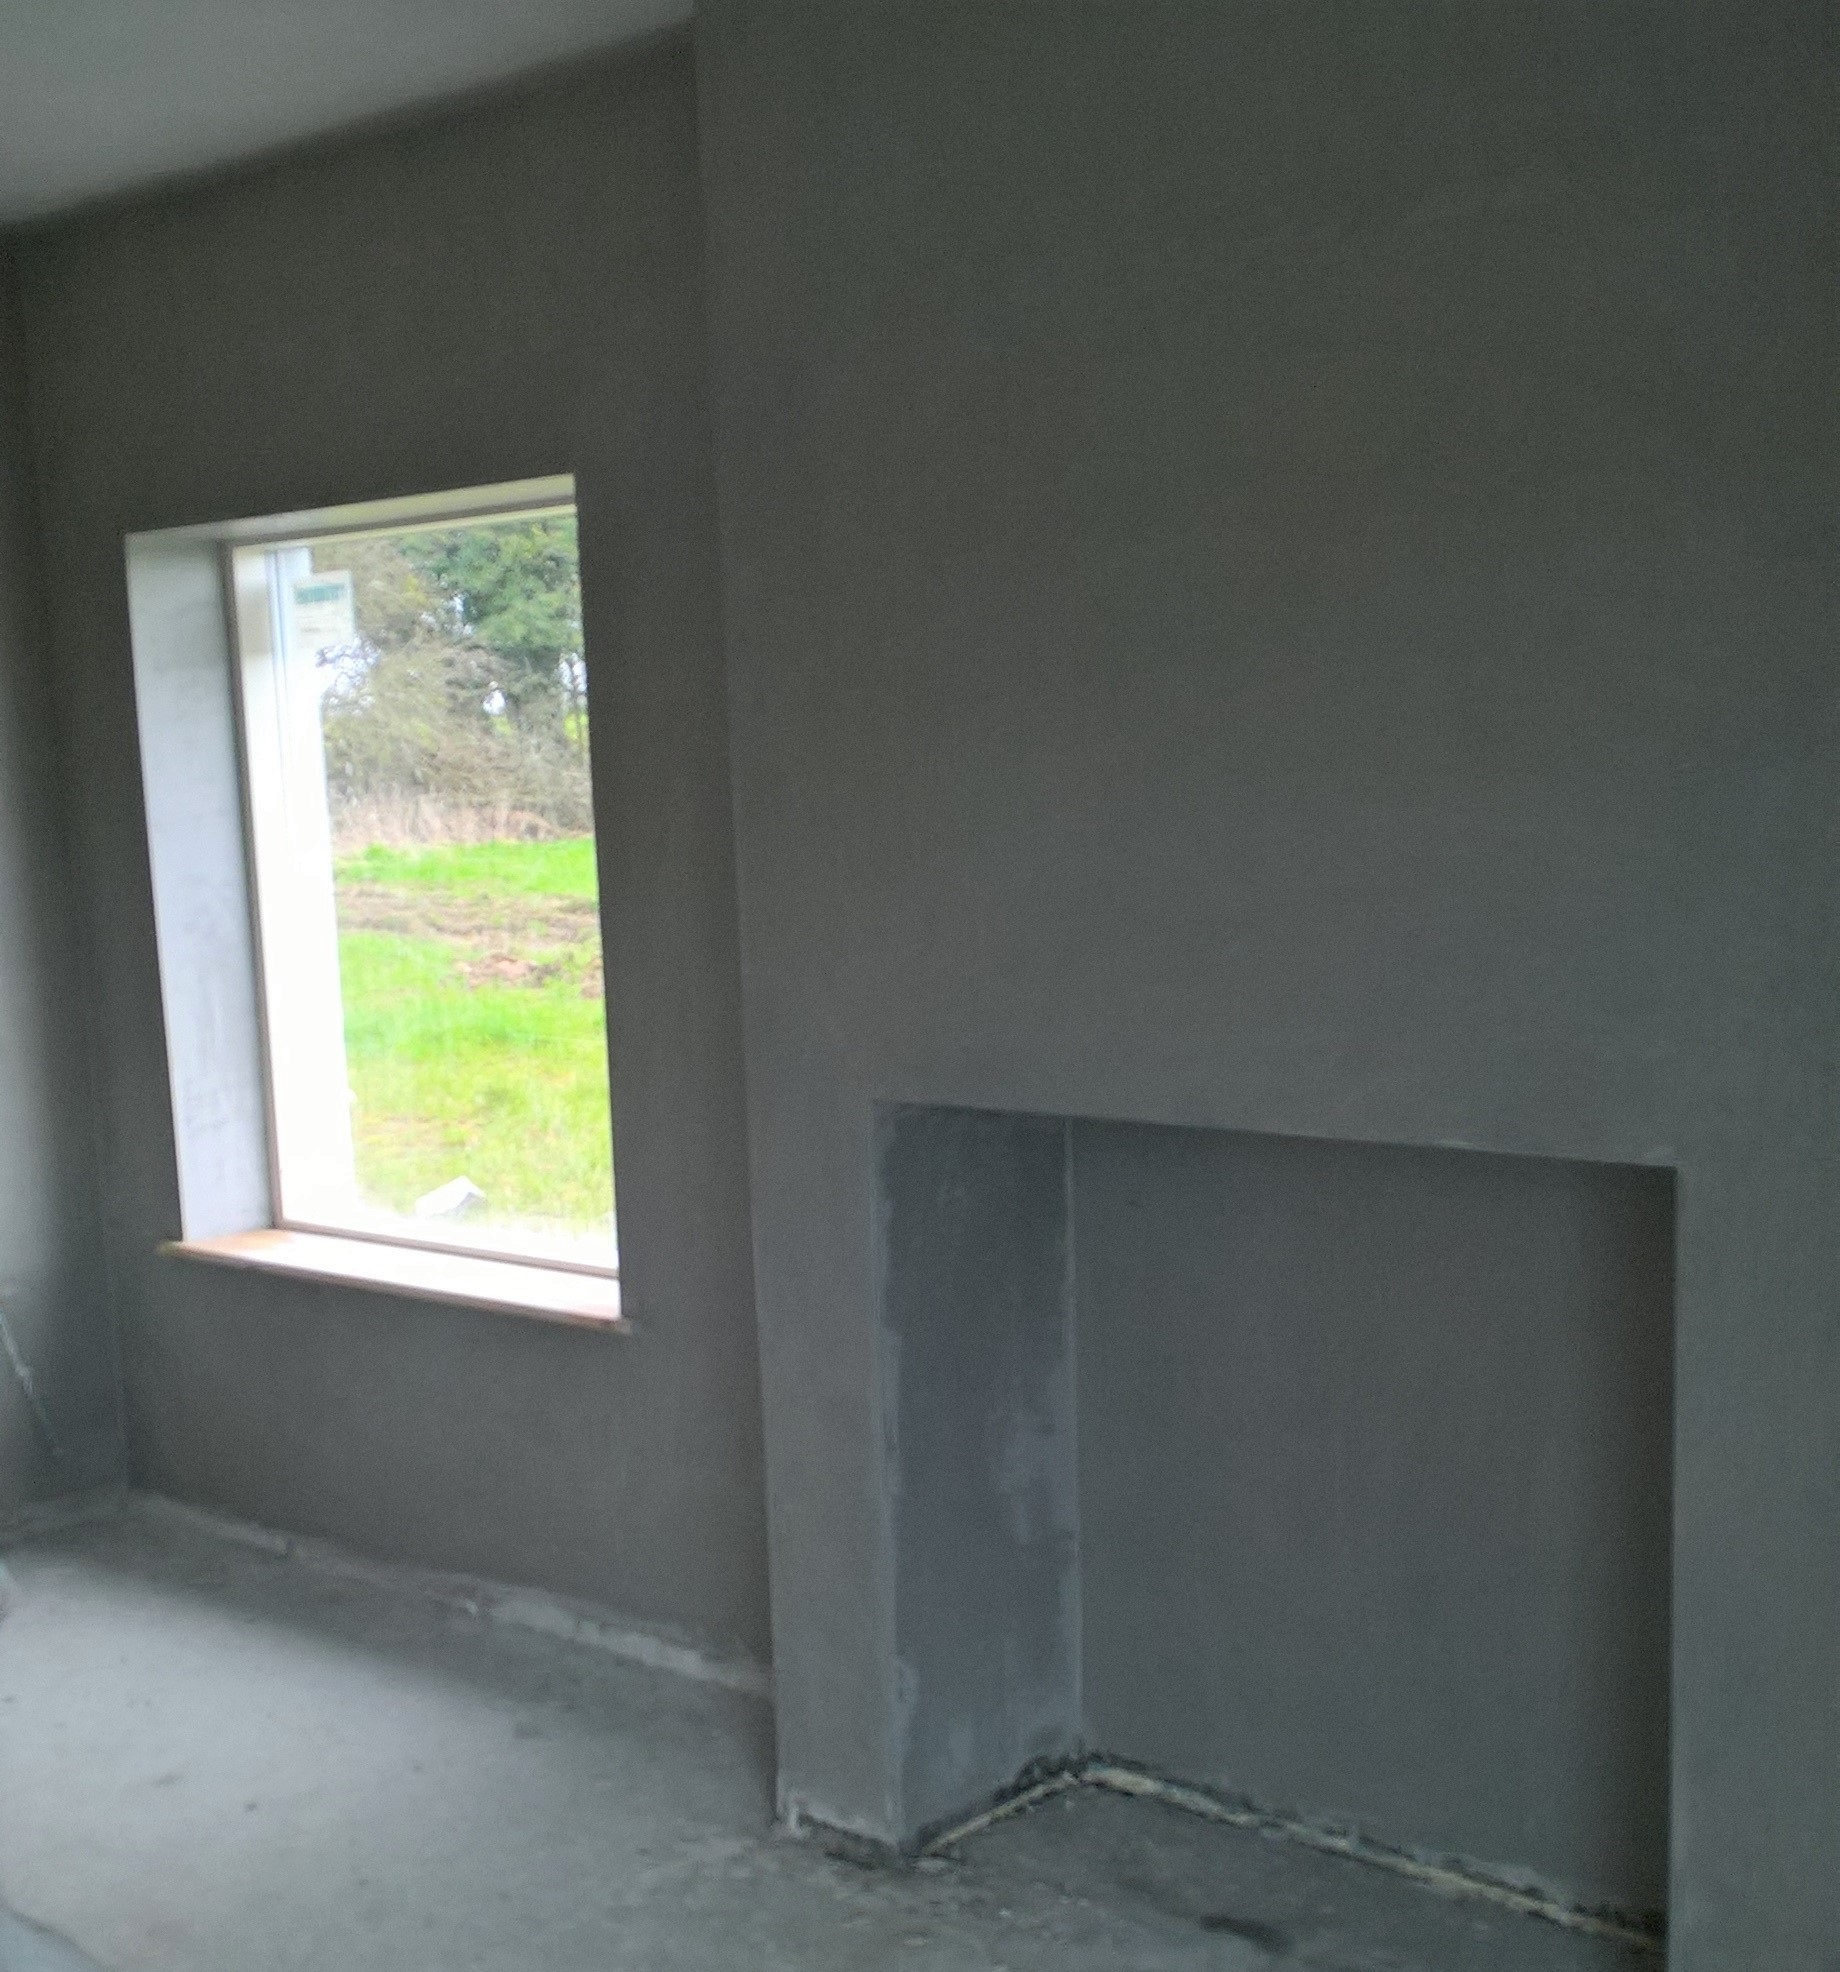 Finished Fireplace and Room